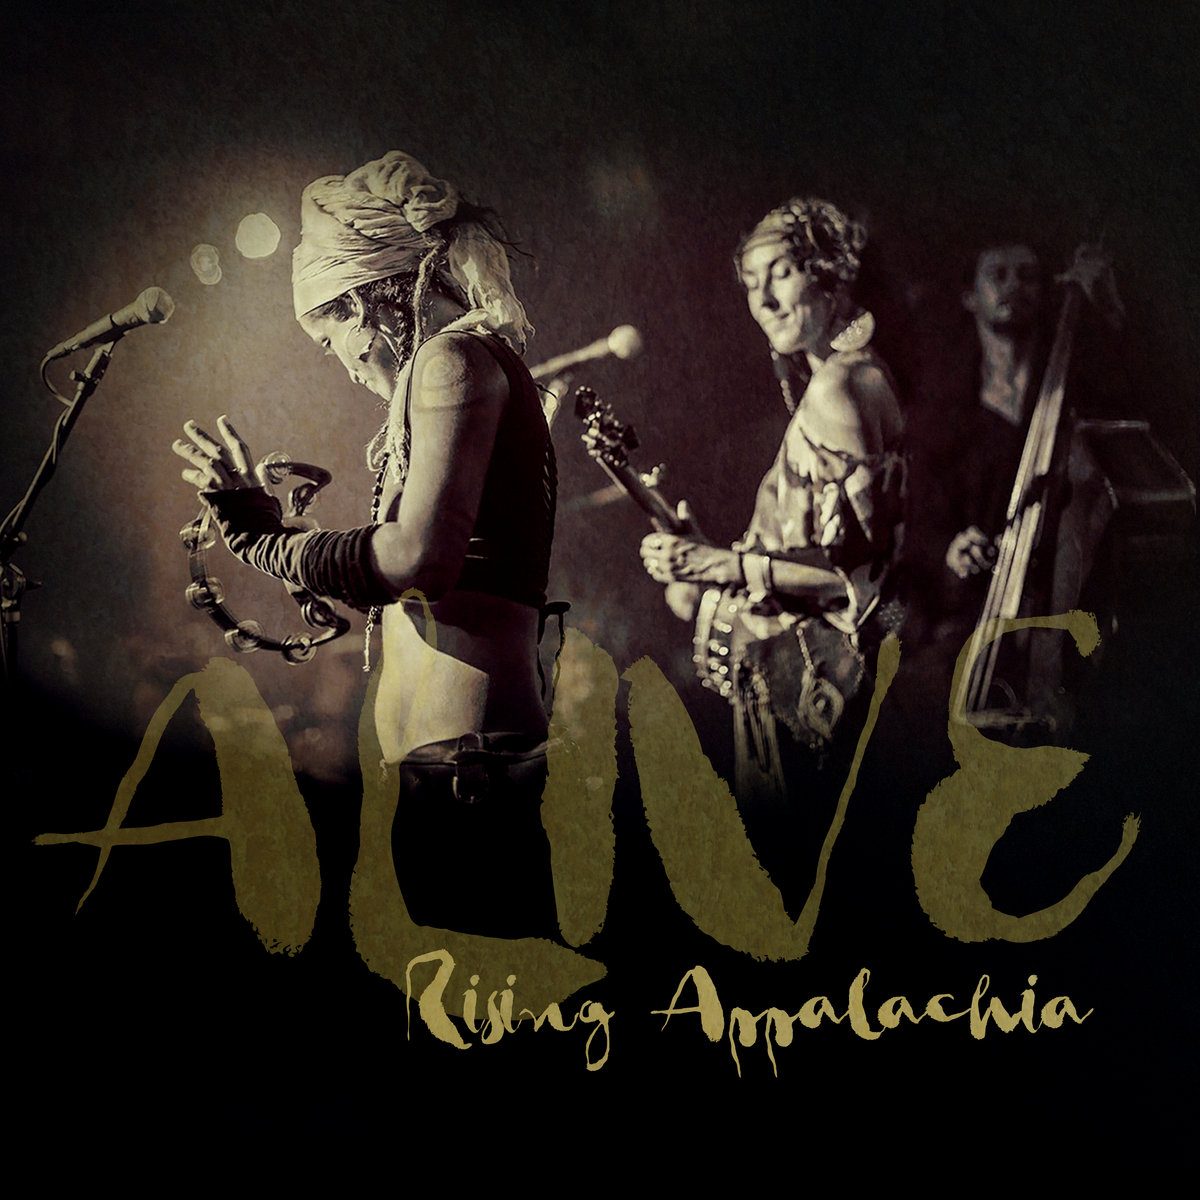 Alive - 2017 | Live AlbumCrafted from 2 years of stage serenades from across North America, we give to you our 7th album, ALIVE. Captured from the live lightning bolts that pass between audience and performer in the concert hall, Alive is a magical mixing of free-folk, sister-soul, banjo-bass, and acoustic dance-beat throwdown between the beloved members of Rising Appalachia. Featuring the peppered layers and instrumentation of special guests Arouna Diarra and Ayla Nereo, this album is a compilation of our favorite musical arrangements throughout the years. With these songs we celebrate what makes us truly come alive, rejoicing in our creative and communal shared experience through live song and story.